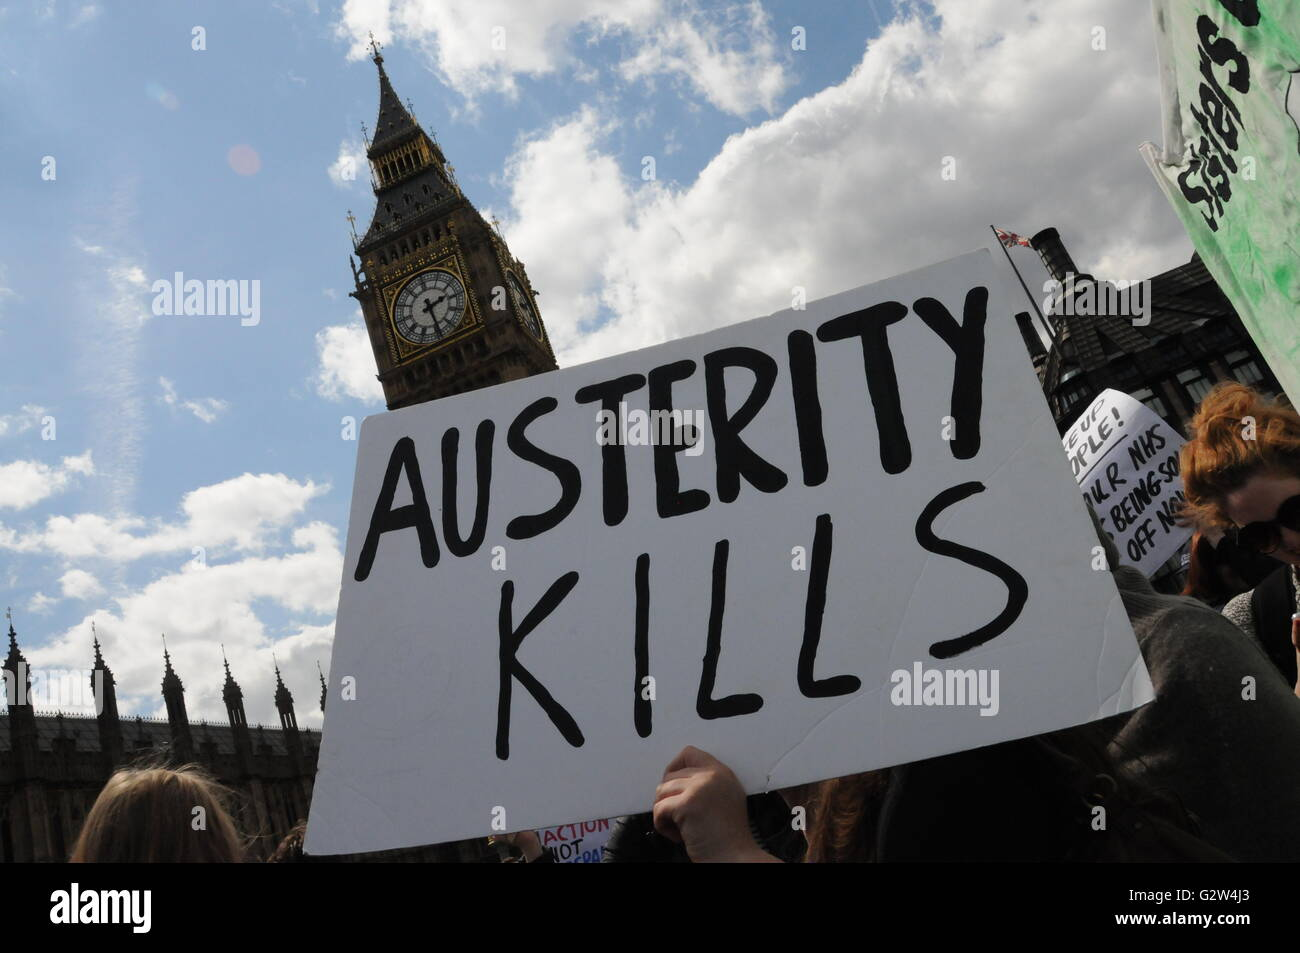 Anti-austerity protesters hold up a placard in front of Big Ben, London. - Stock Image